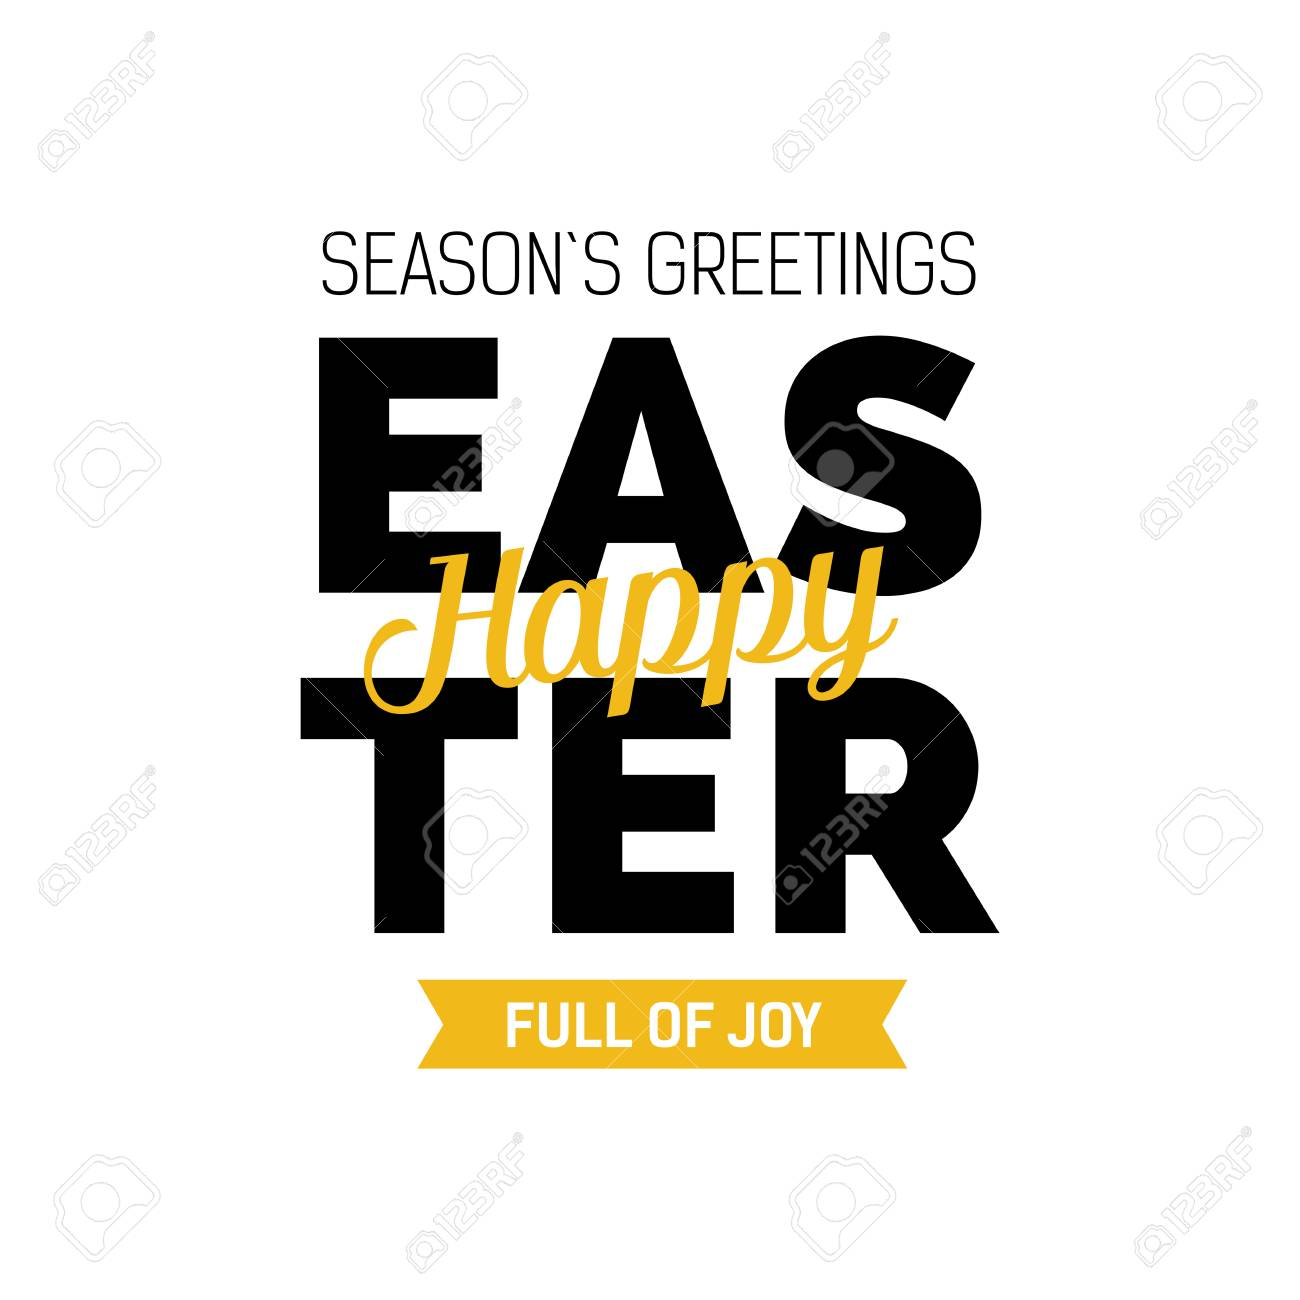 Seasons Greetings Happy Easter Full Of Joy Lettering Modern